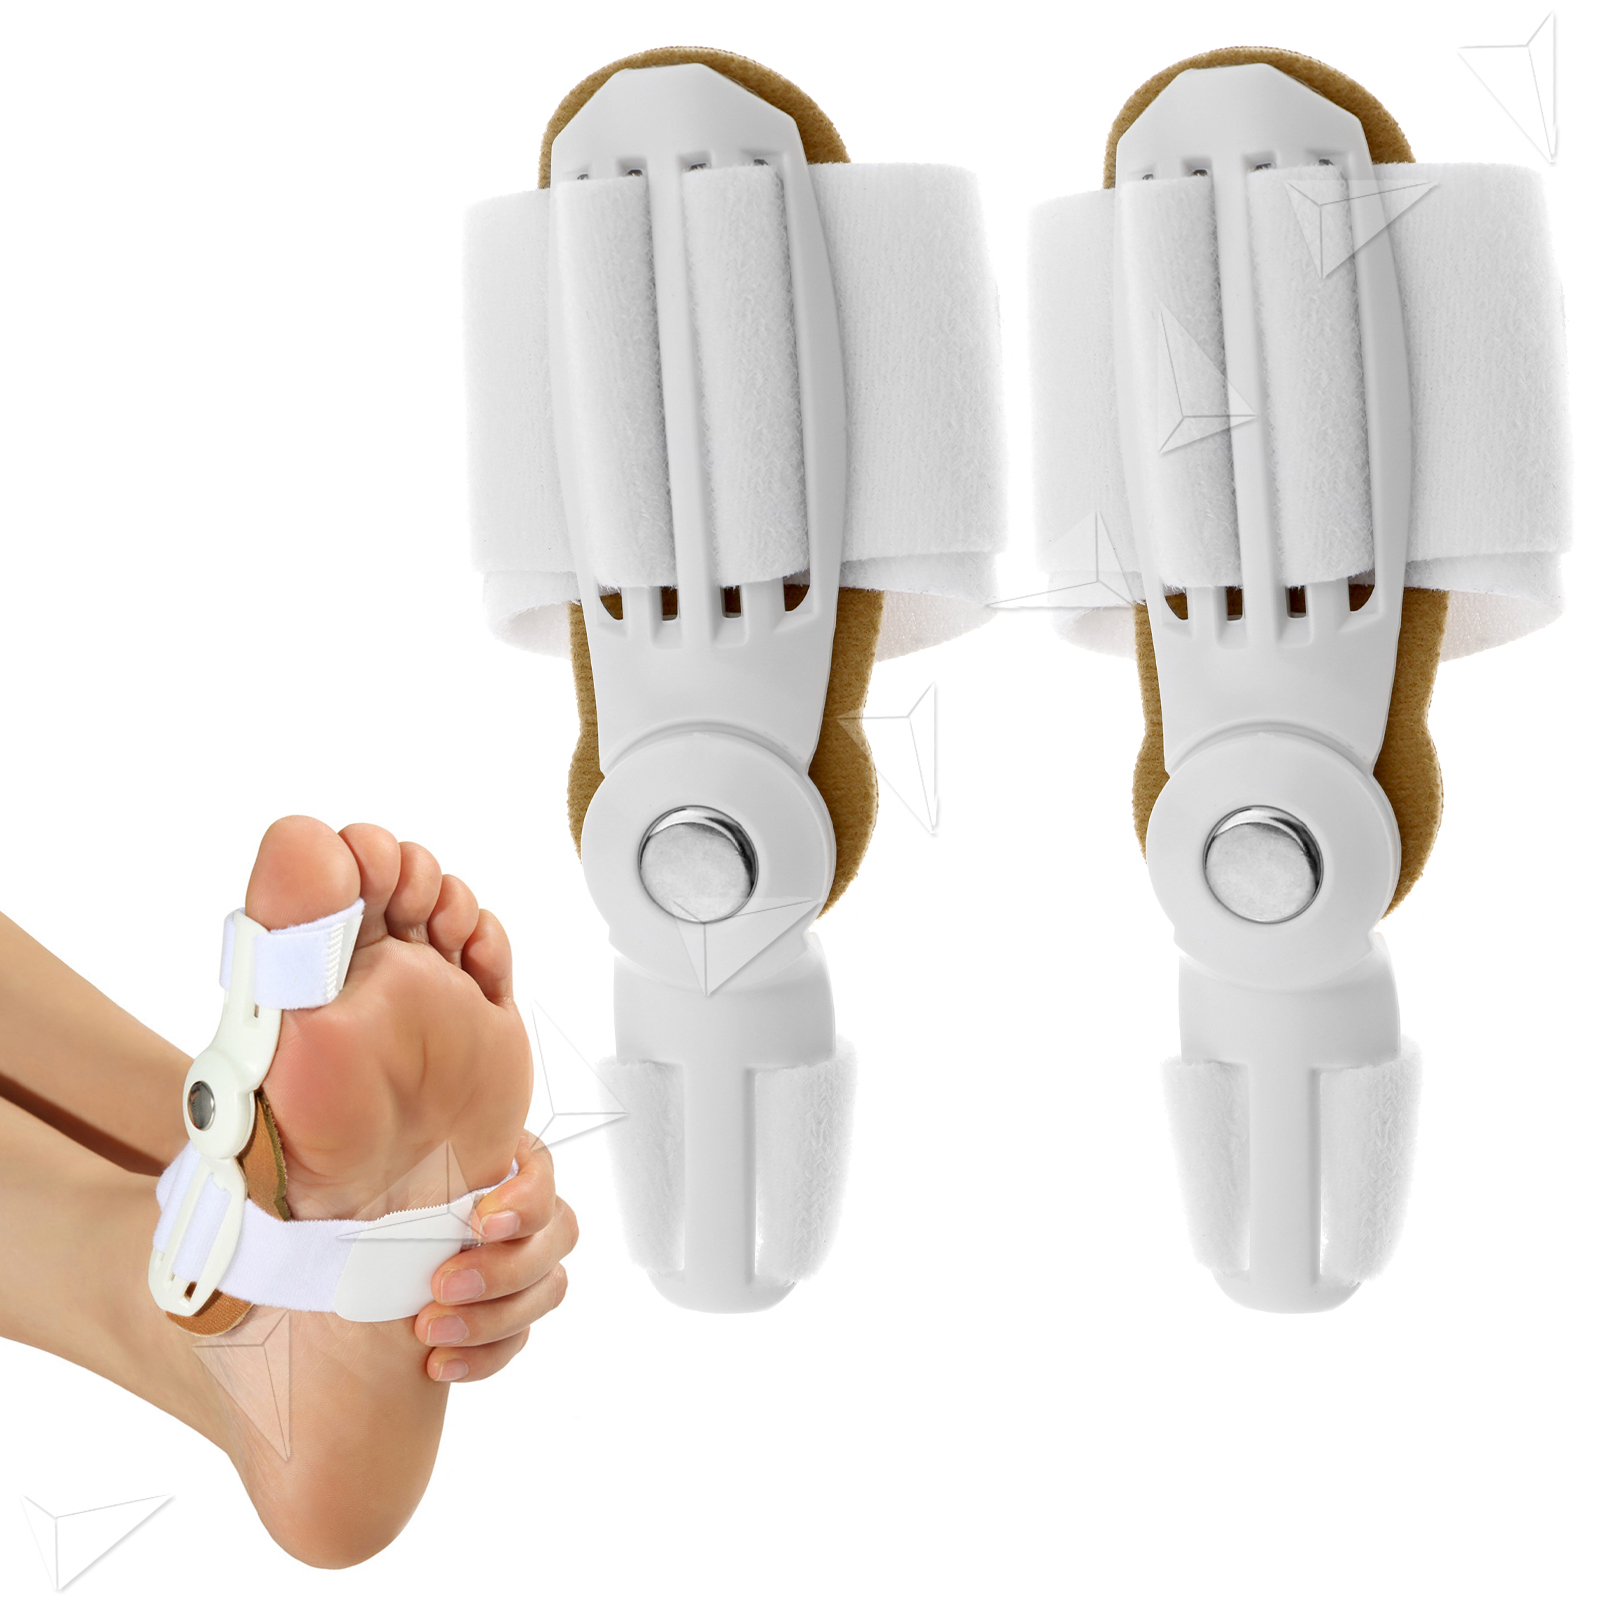 Toe Bunion Straightener Separator Hinged Protector Splint Pad For Hallux Valgus Correction 1pair Silicone Foot Fingers Thumb Protect